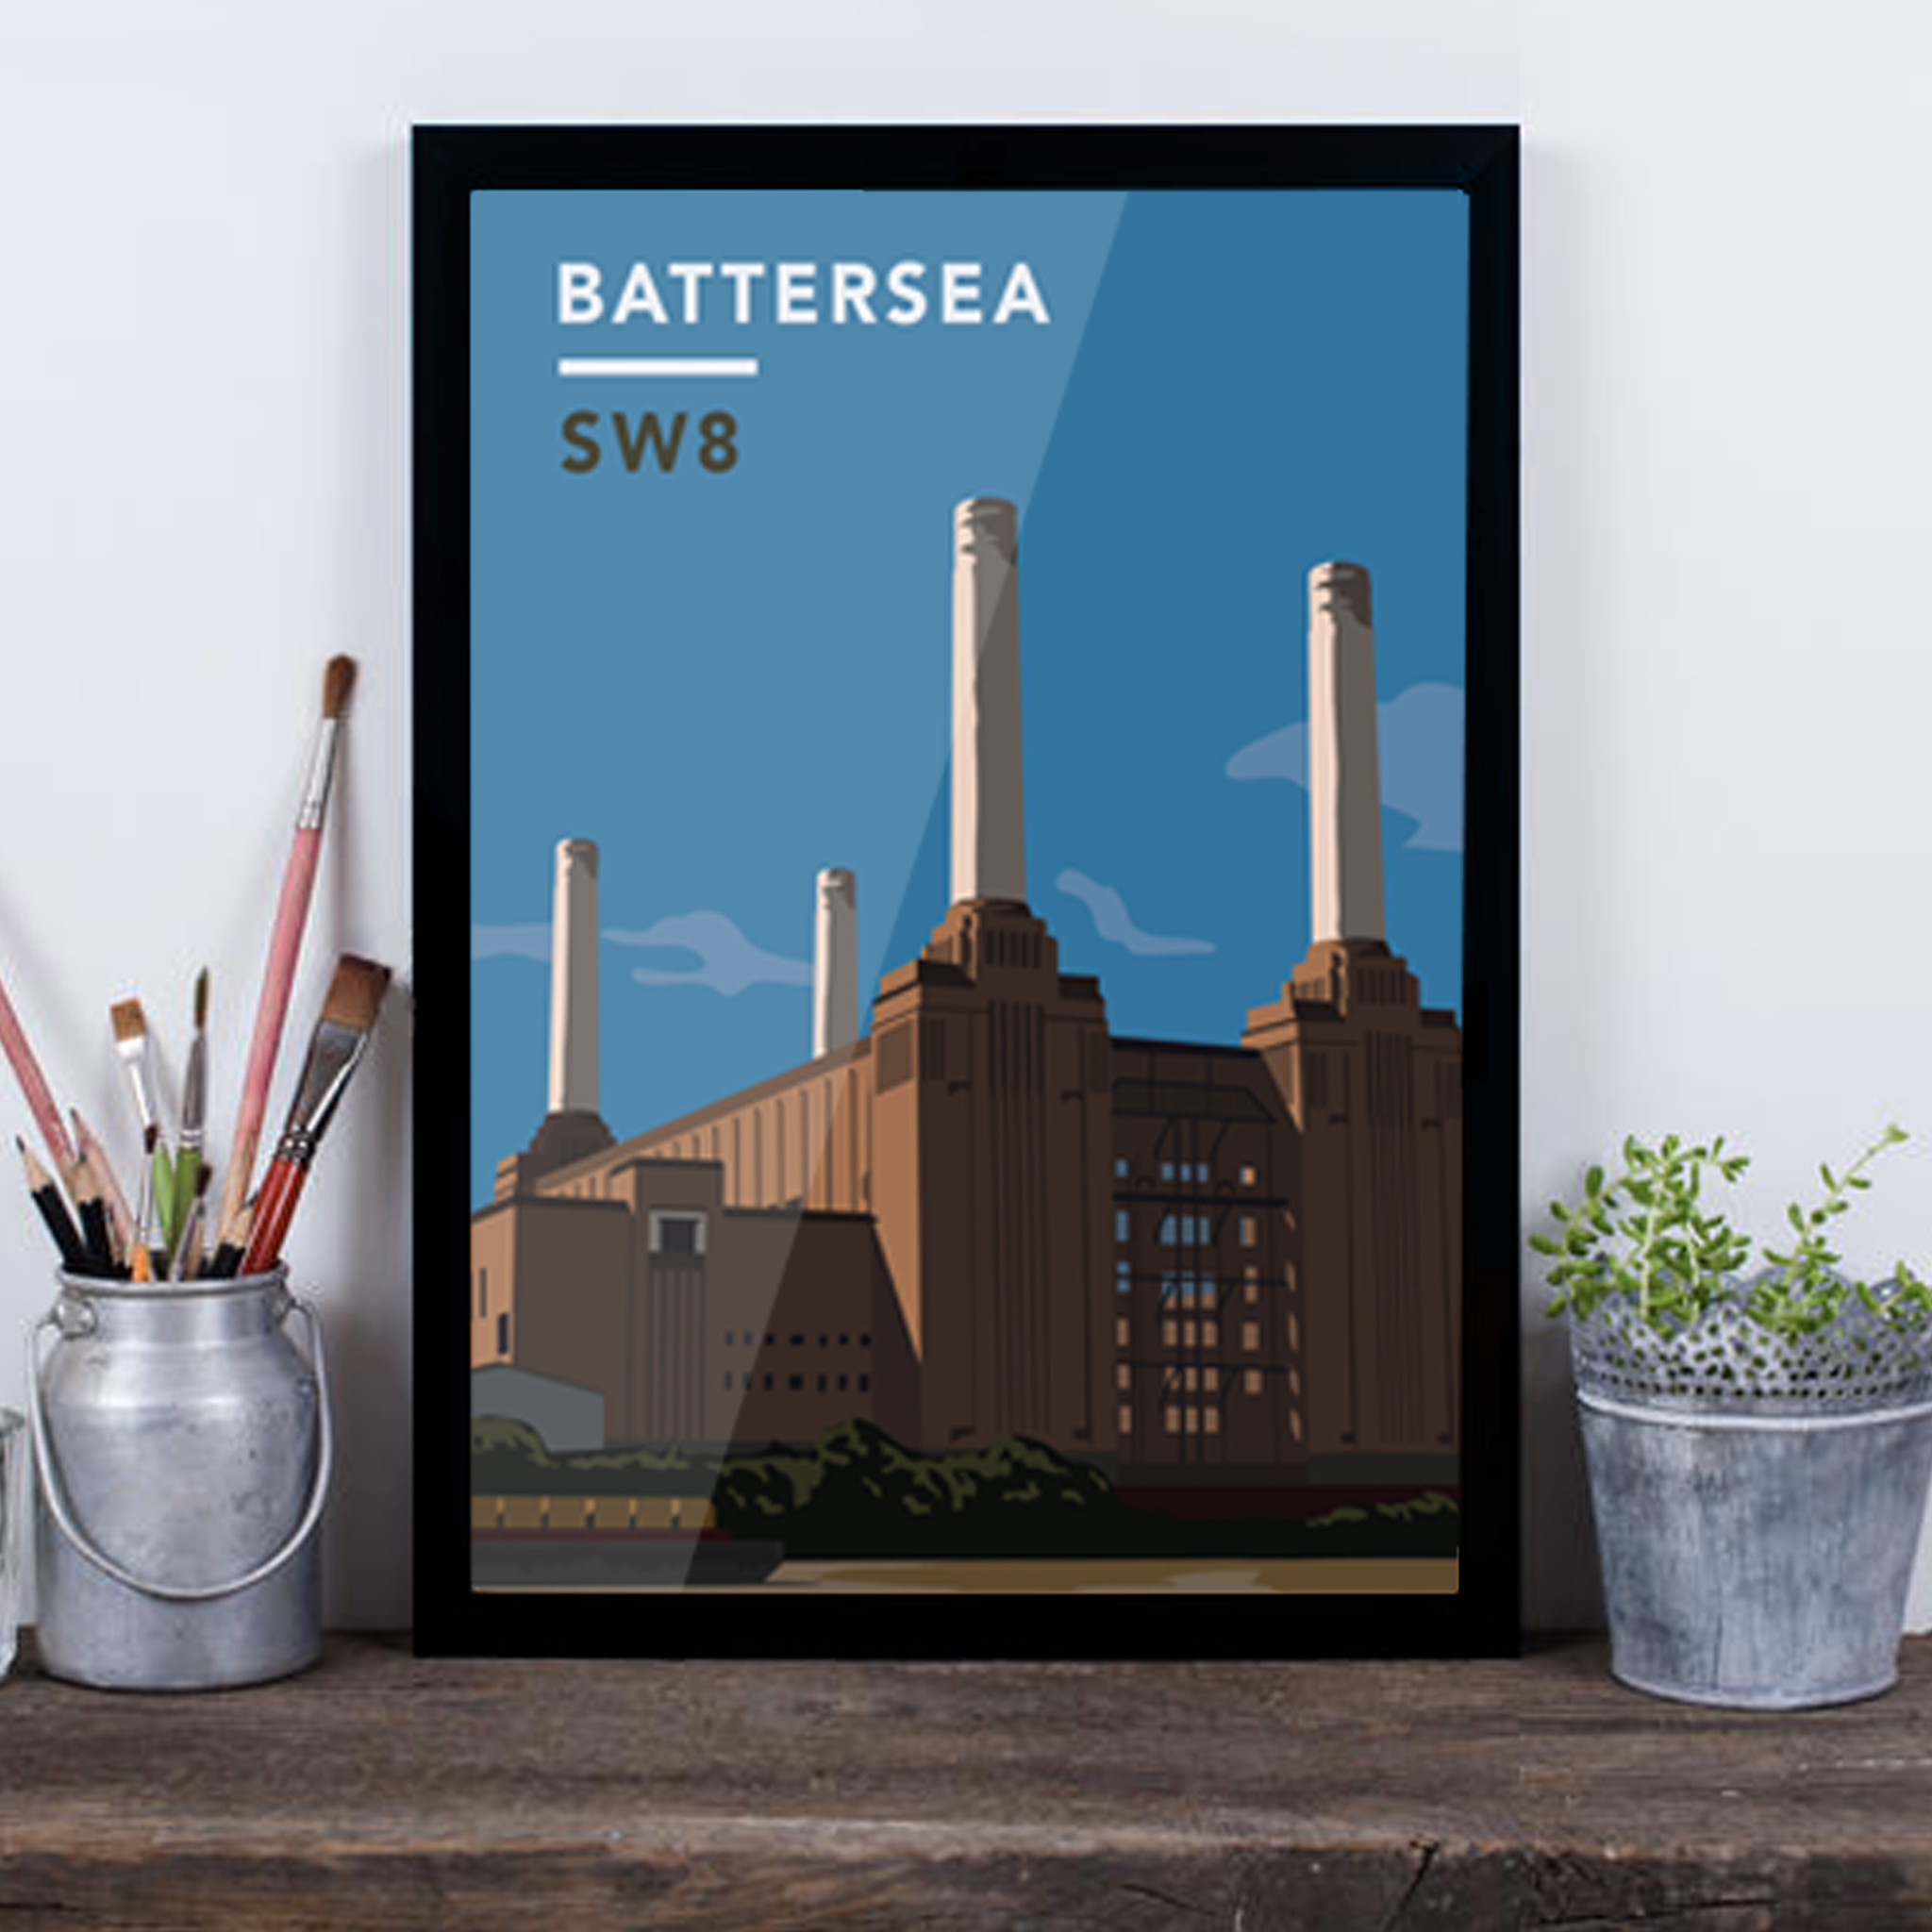 Battersea Power Station SW8 - Giclée Art Print -